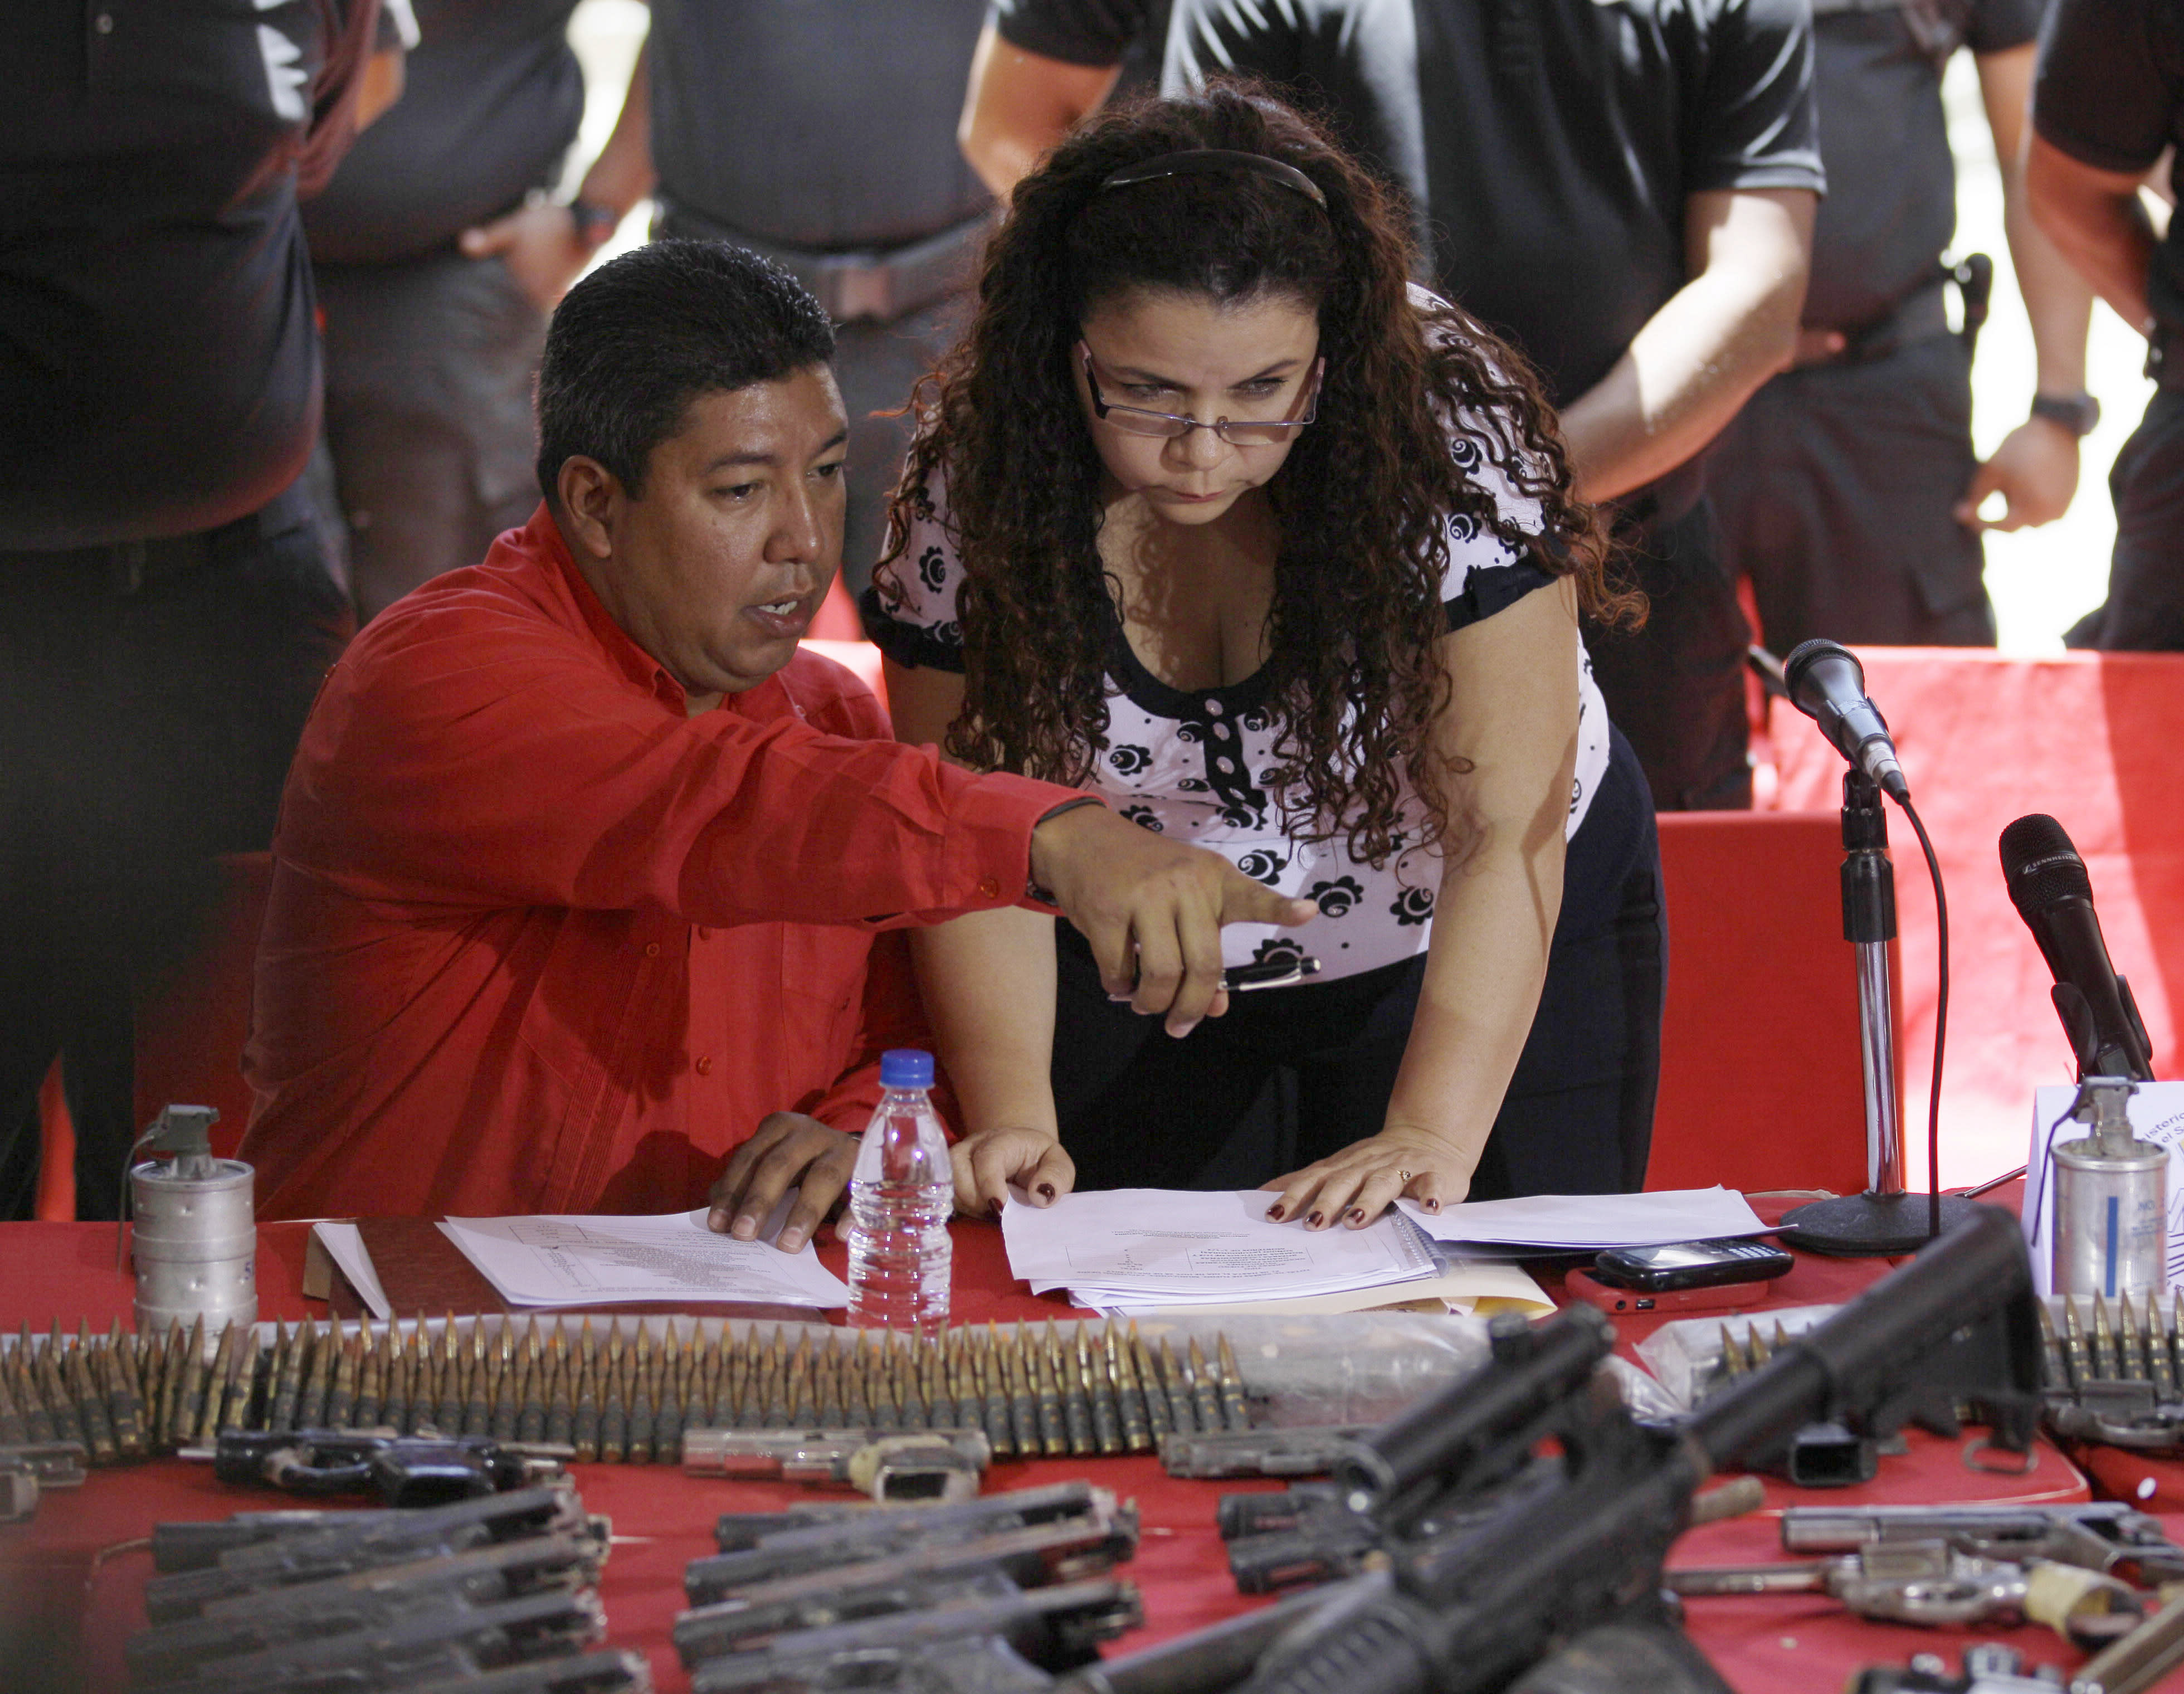 FILE - In this June 3, 2012 file photo, Iris Varela, Venezuela's Minister of Prisons, right, speaks to Wilmer Apostol, Venezuela's Director of Prisons, in front of seized weapons during a news conference at La Planta prison in Caracas, Venezuela. Varela, declared Tuesday, April 23, 2013 that she was preparing a cell for opposition candidate Henrique Capriles for allegedly directing the purported clinic attacks and other violence against government buildings and supporters. (AP Photo/Fernando Llano, File)